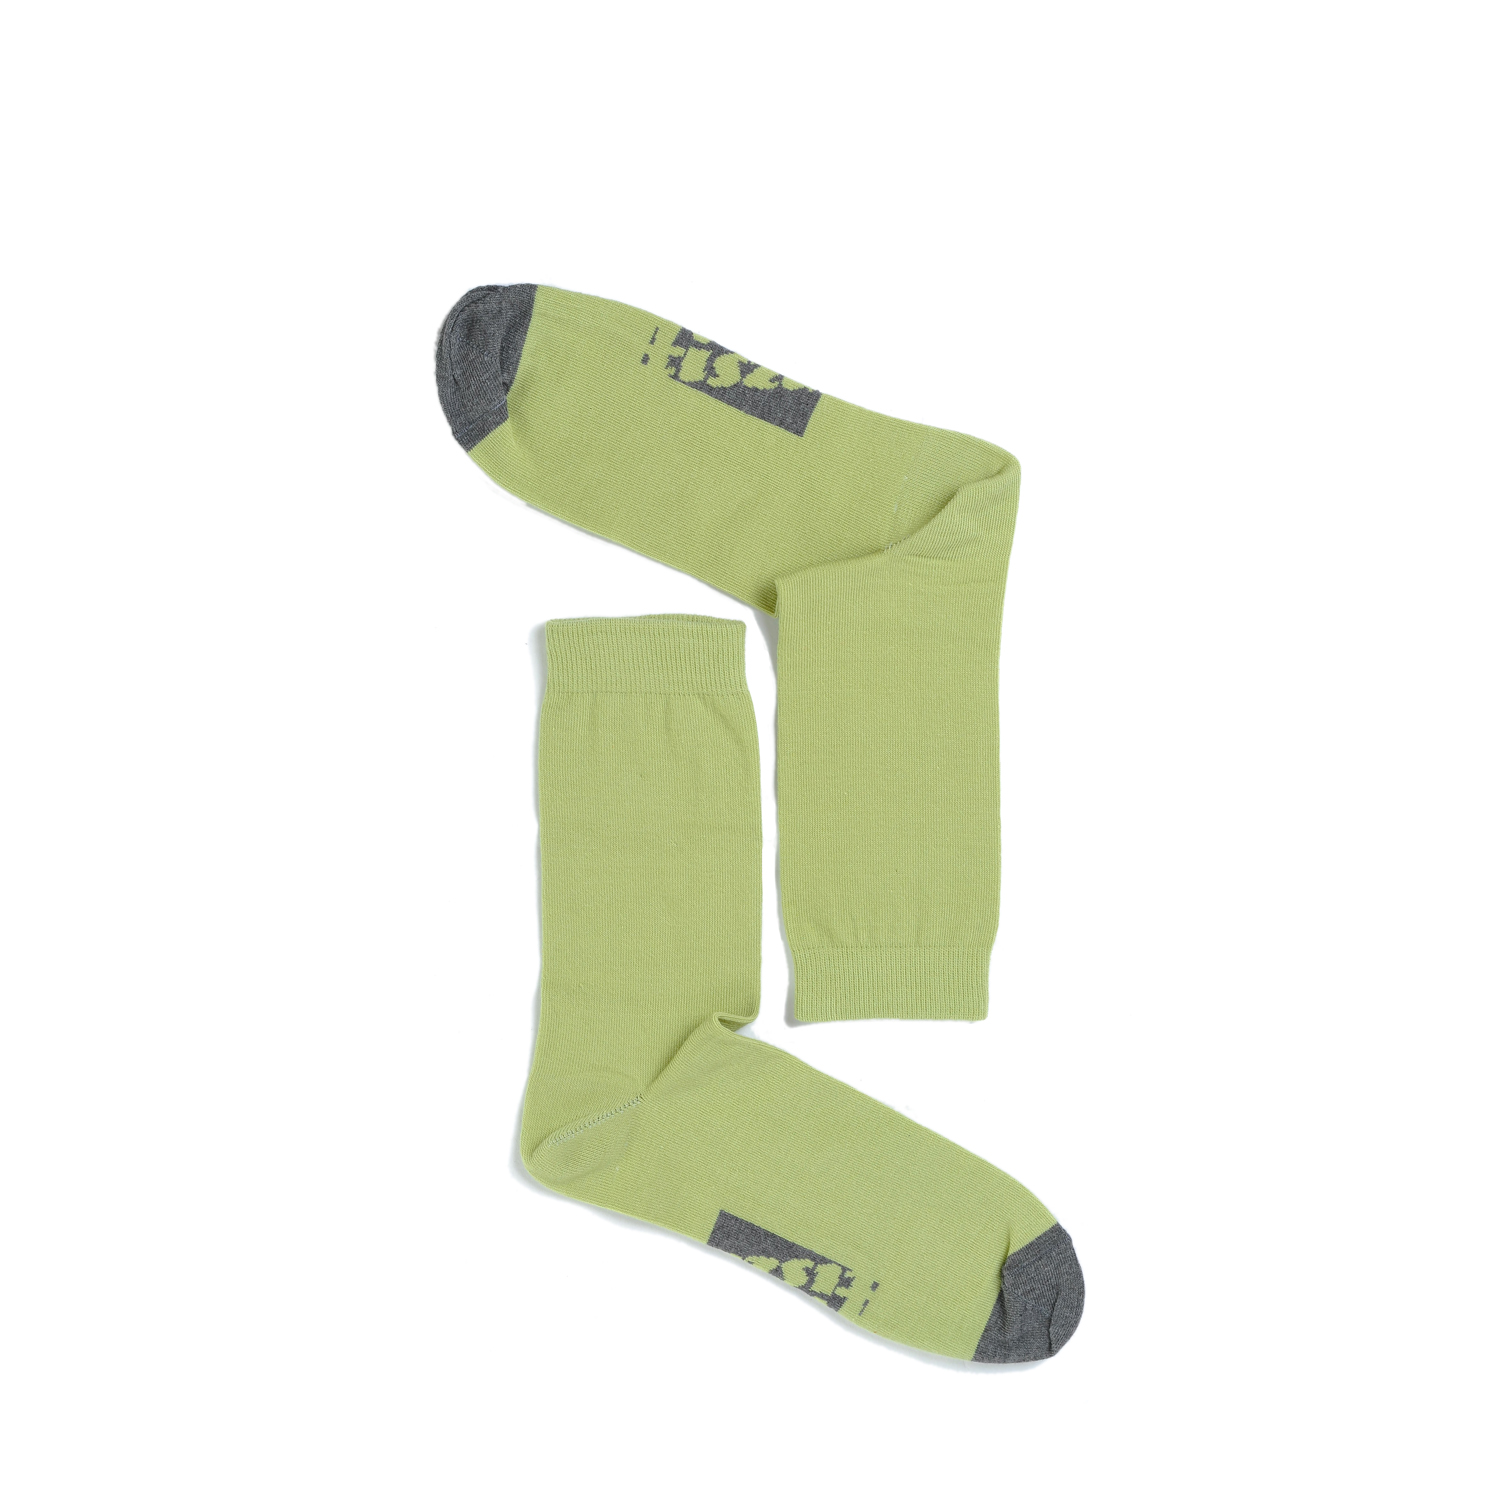 Tisza shoes - Socks - Sport Green-grey